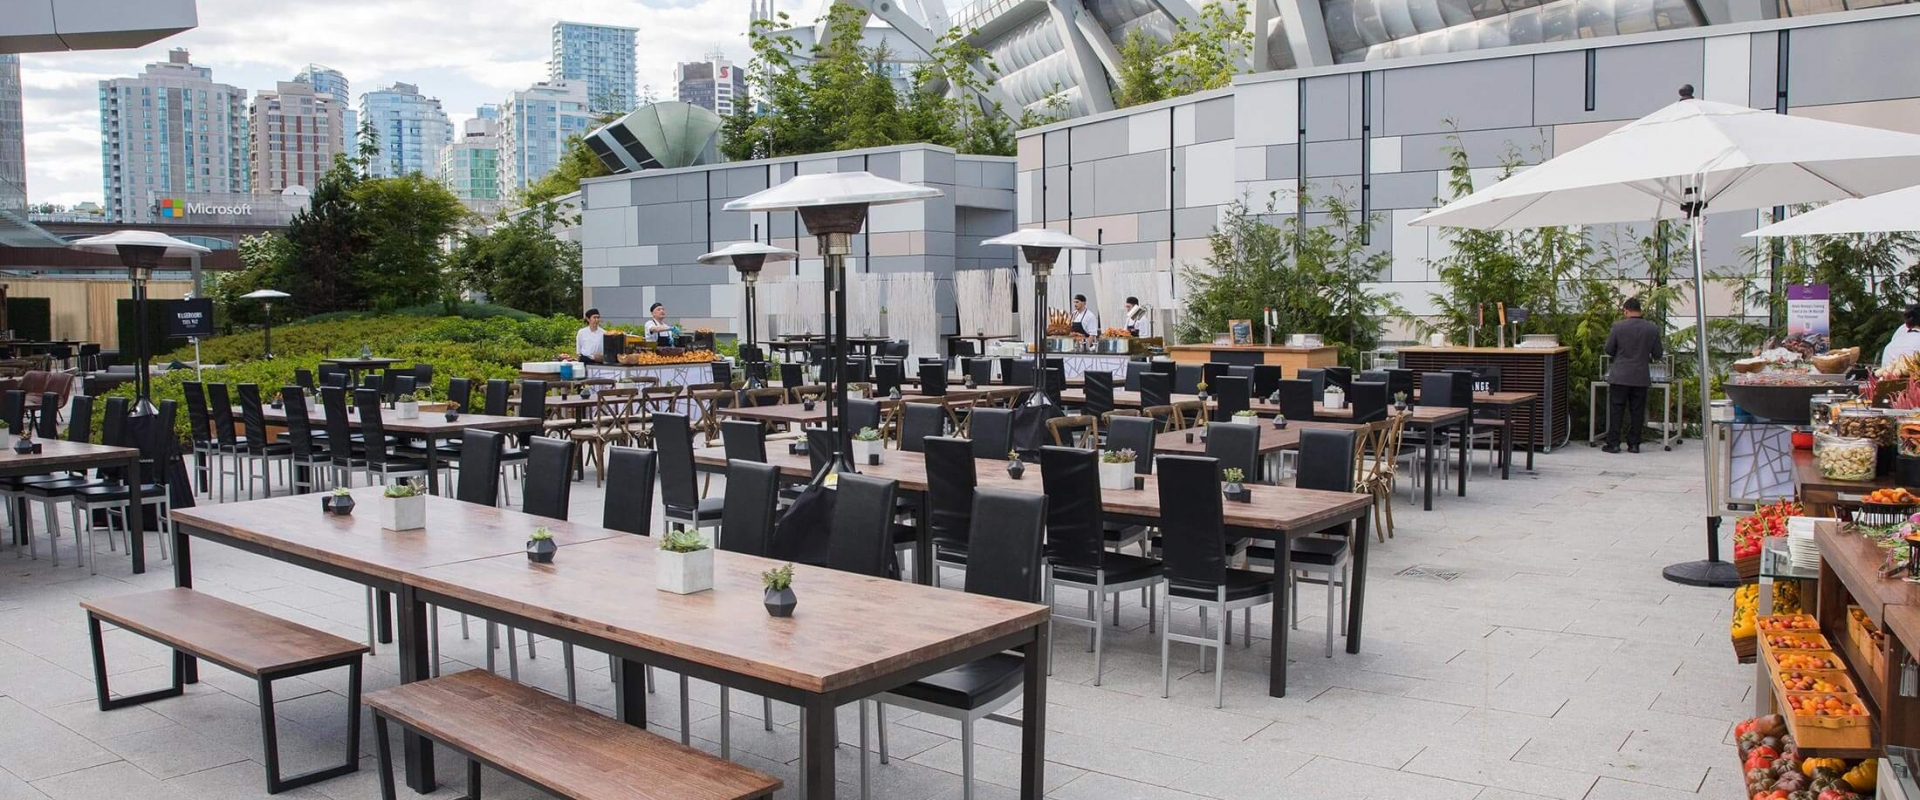 Rooftop park tables and chairs at Parq Vancouver